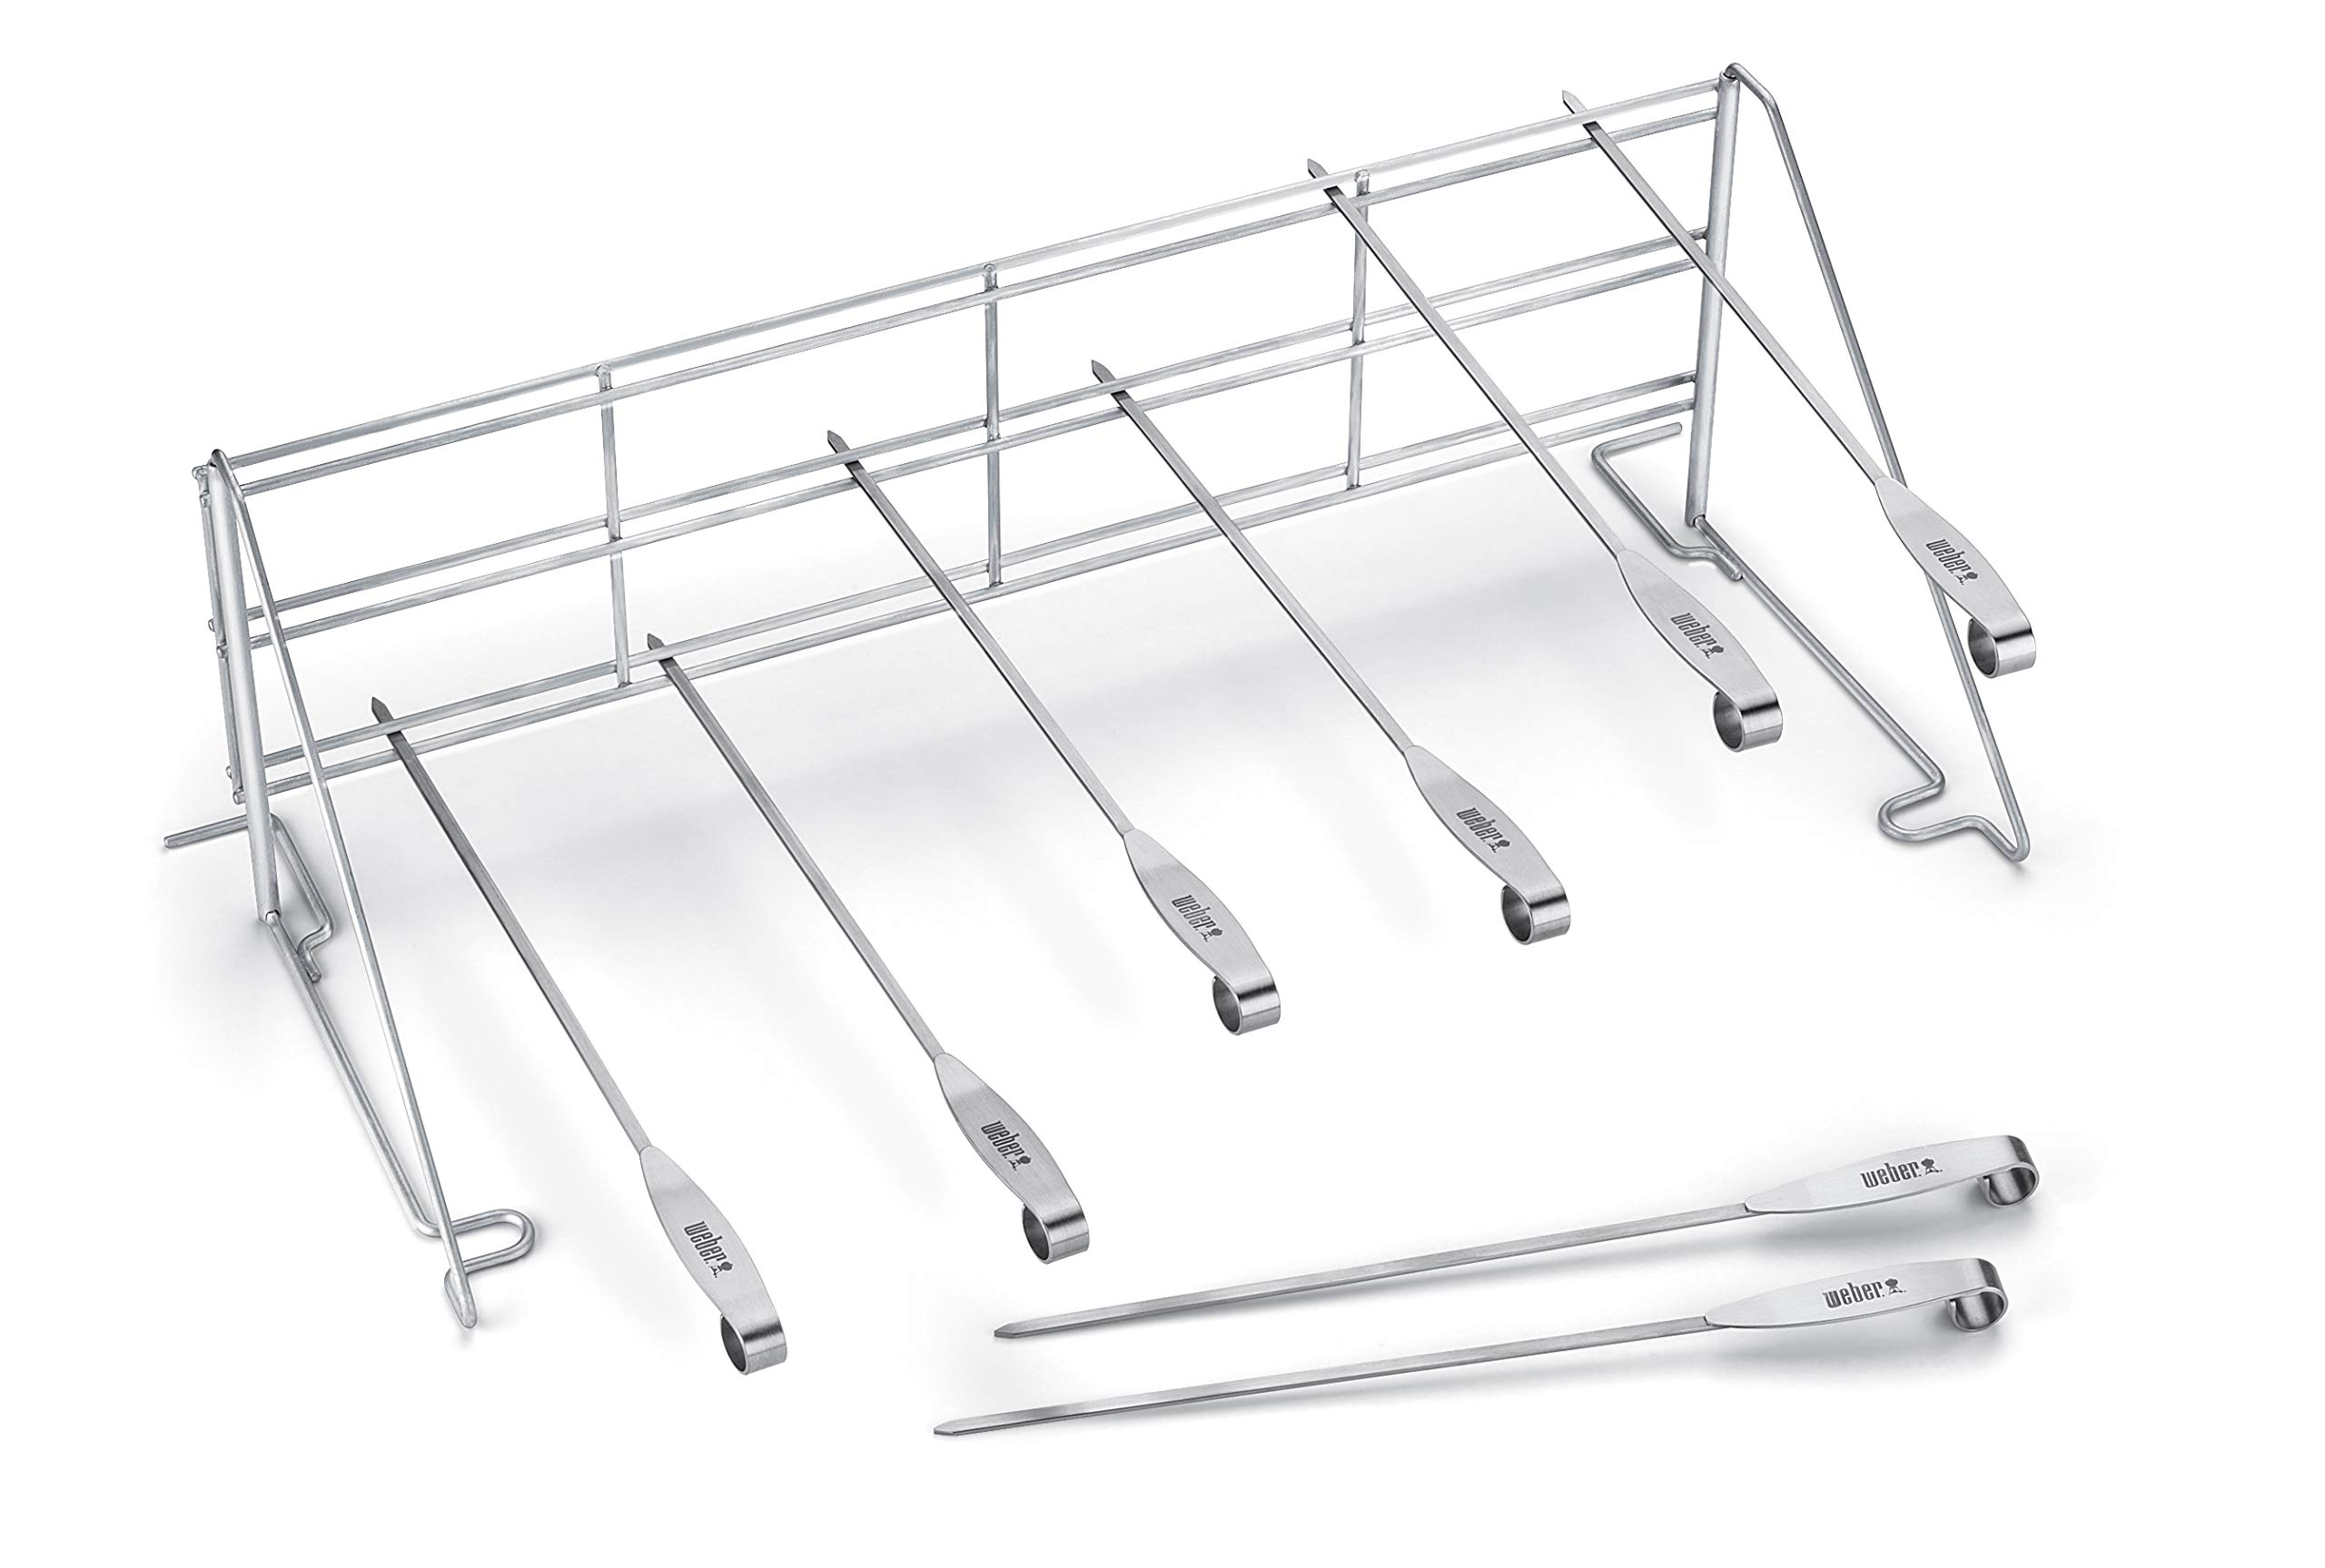 Weber 7615 Elevations Tiered Cooking System Grill Rack and Skewer Set by Weber